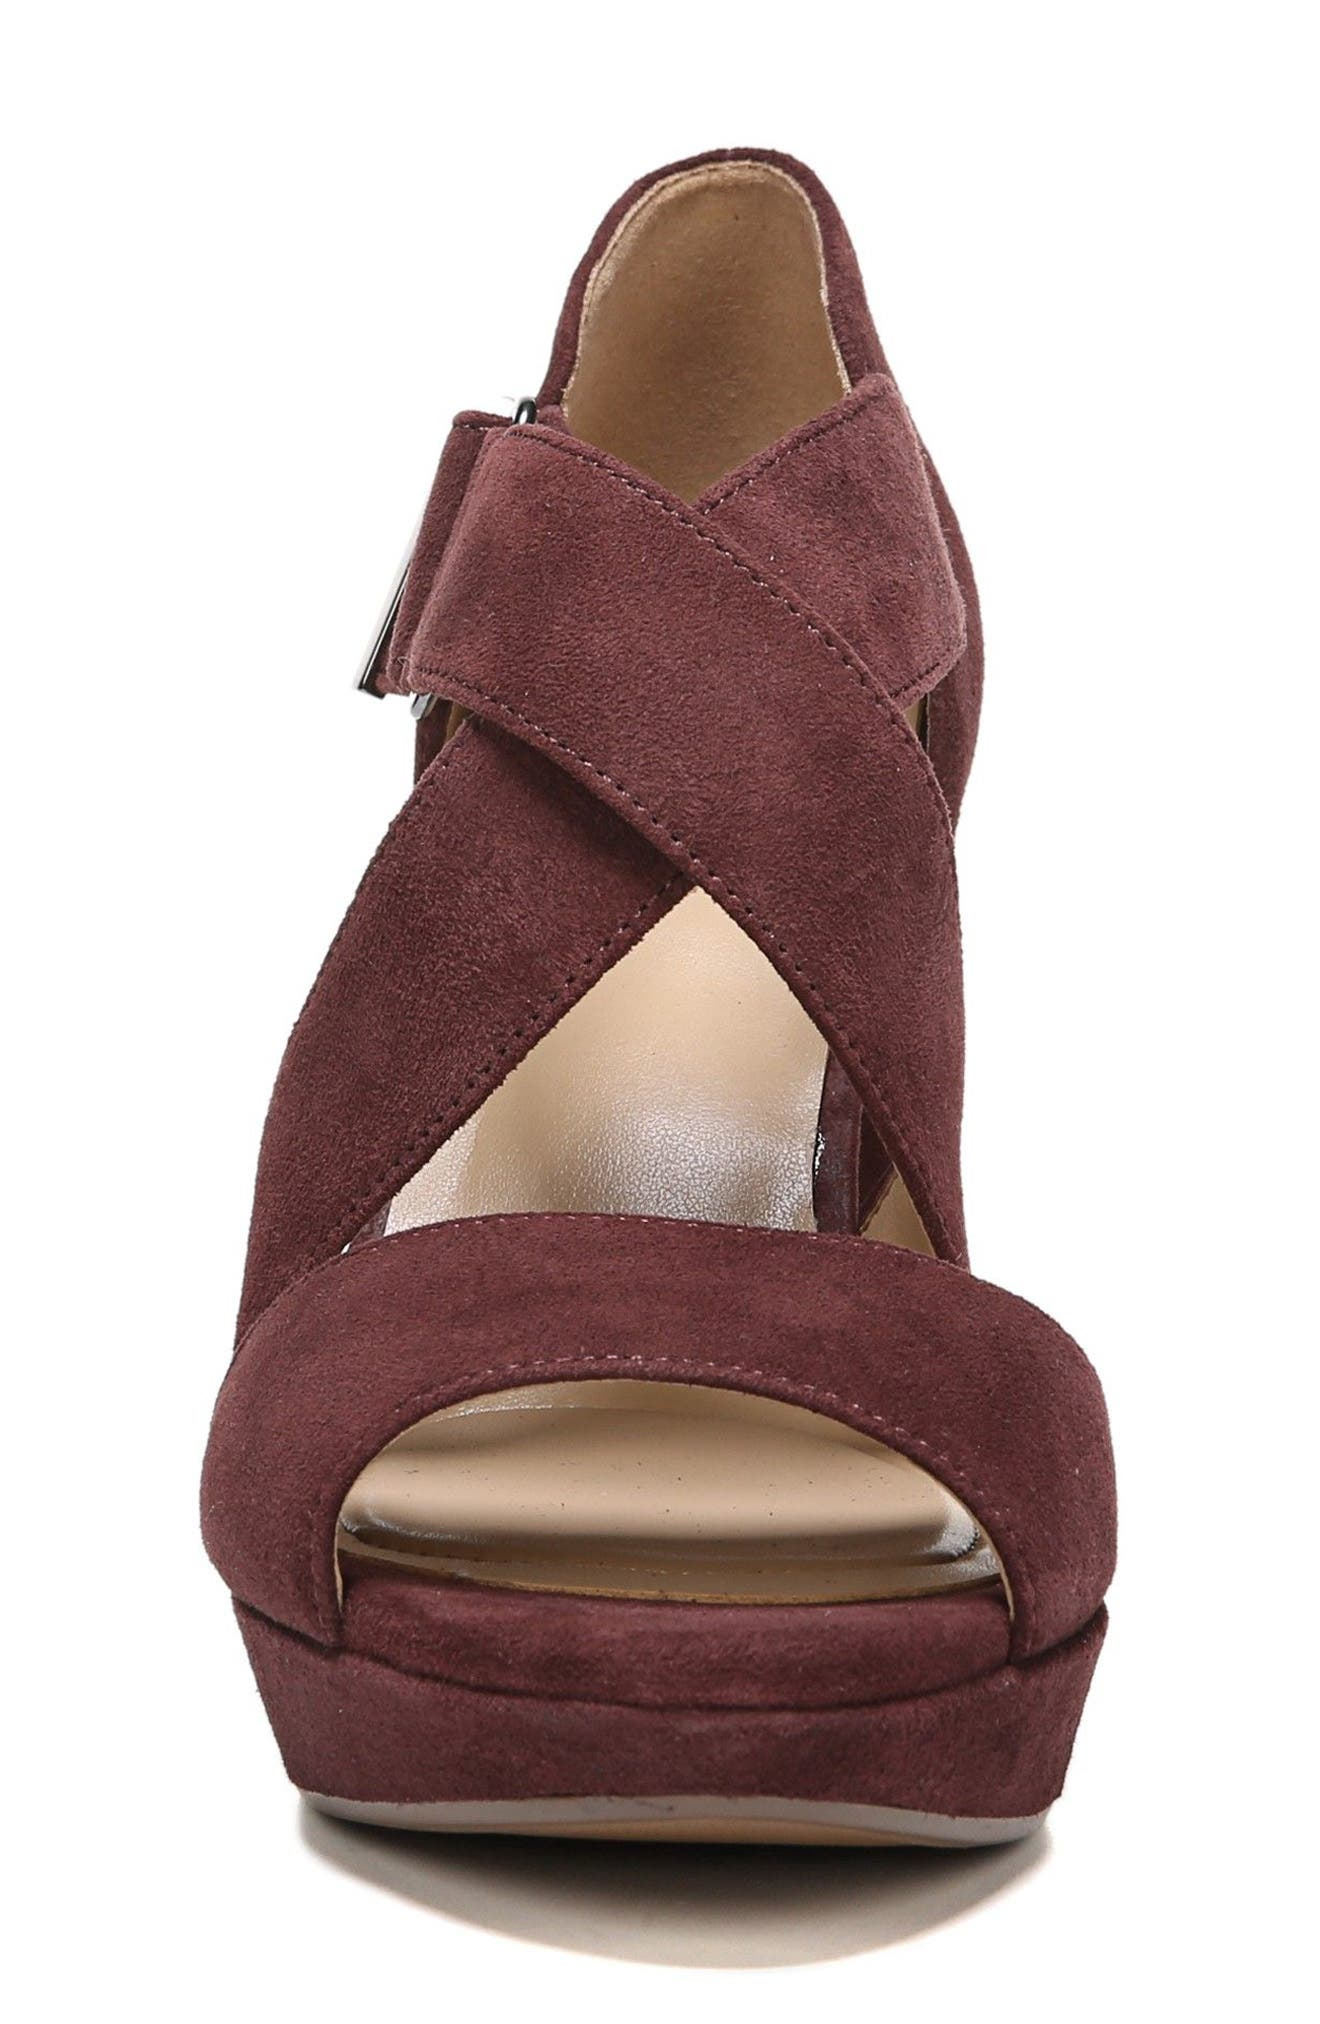 Harper Platform Sandal,                             Alternate thumbnail 4, color,                             Bordo Suede